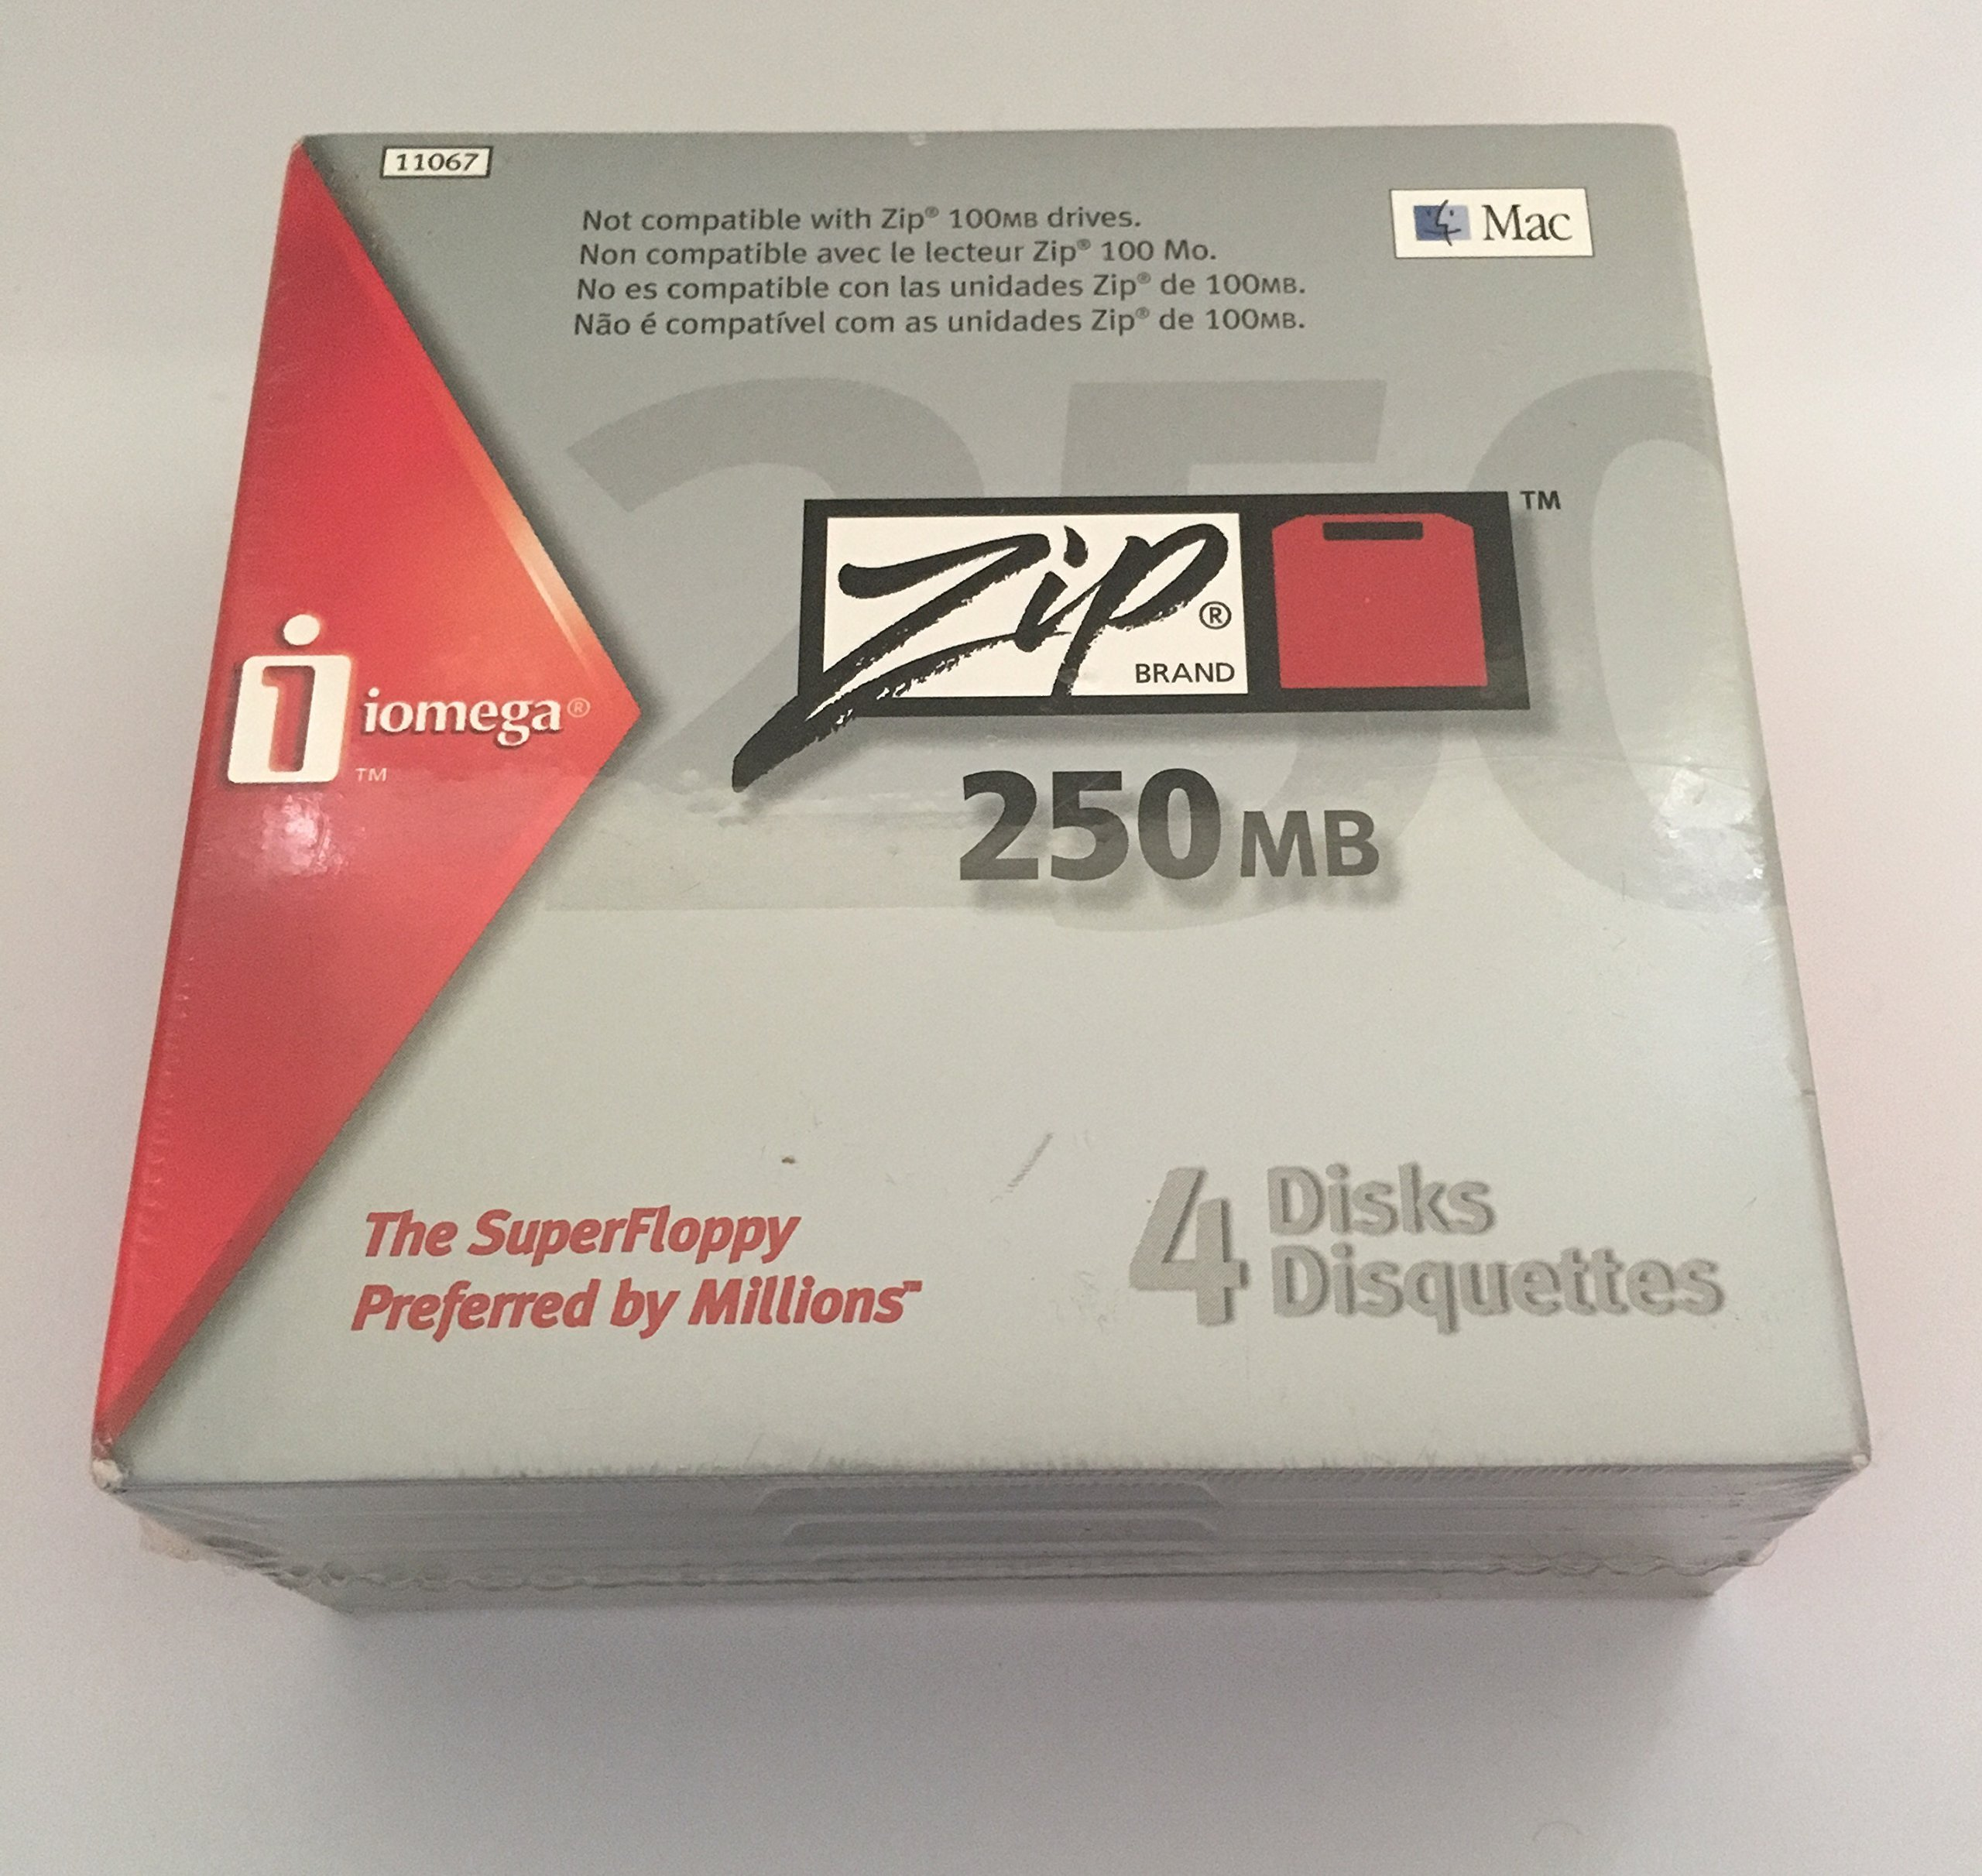 Iomega 11067 Zip 250 MB Disks Mac Formatted (4-Pack) (Discontinued by Manufacturer) by Iomega